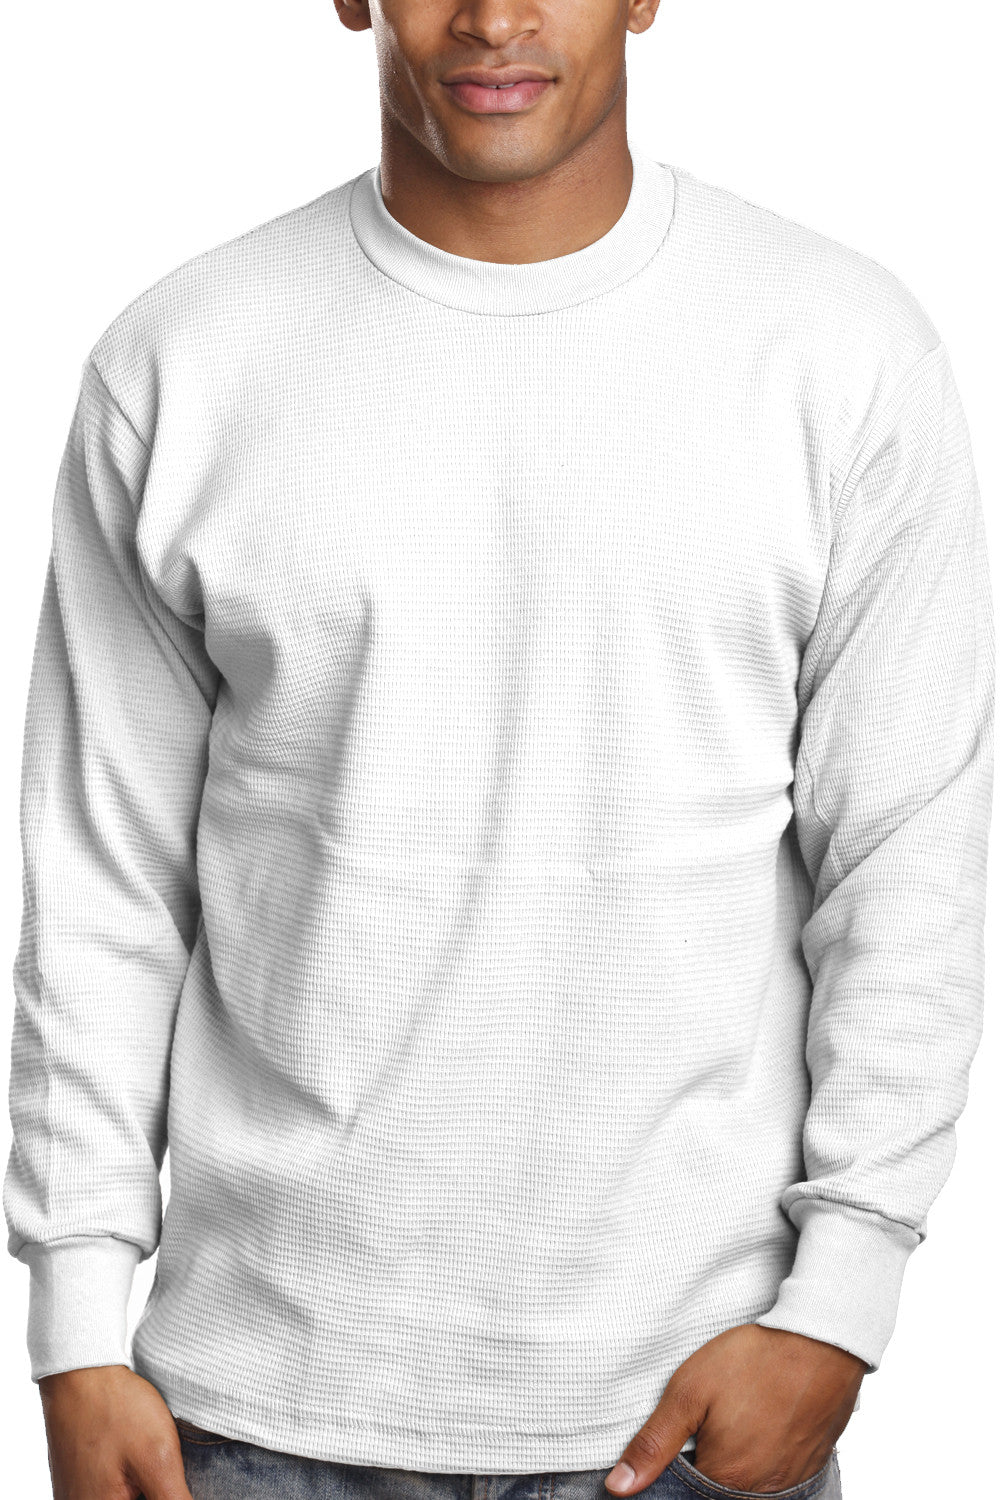 Thermal Knit Tops-White - Pro 5 Apparel